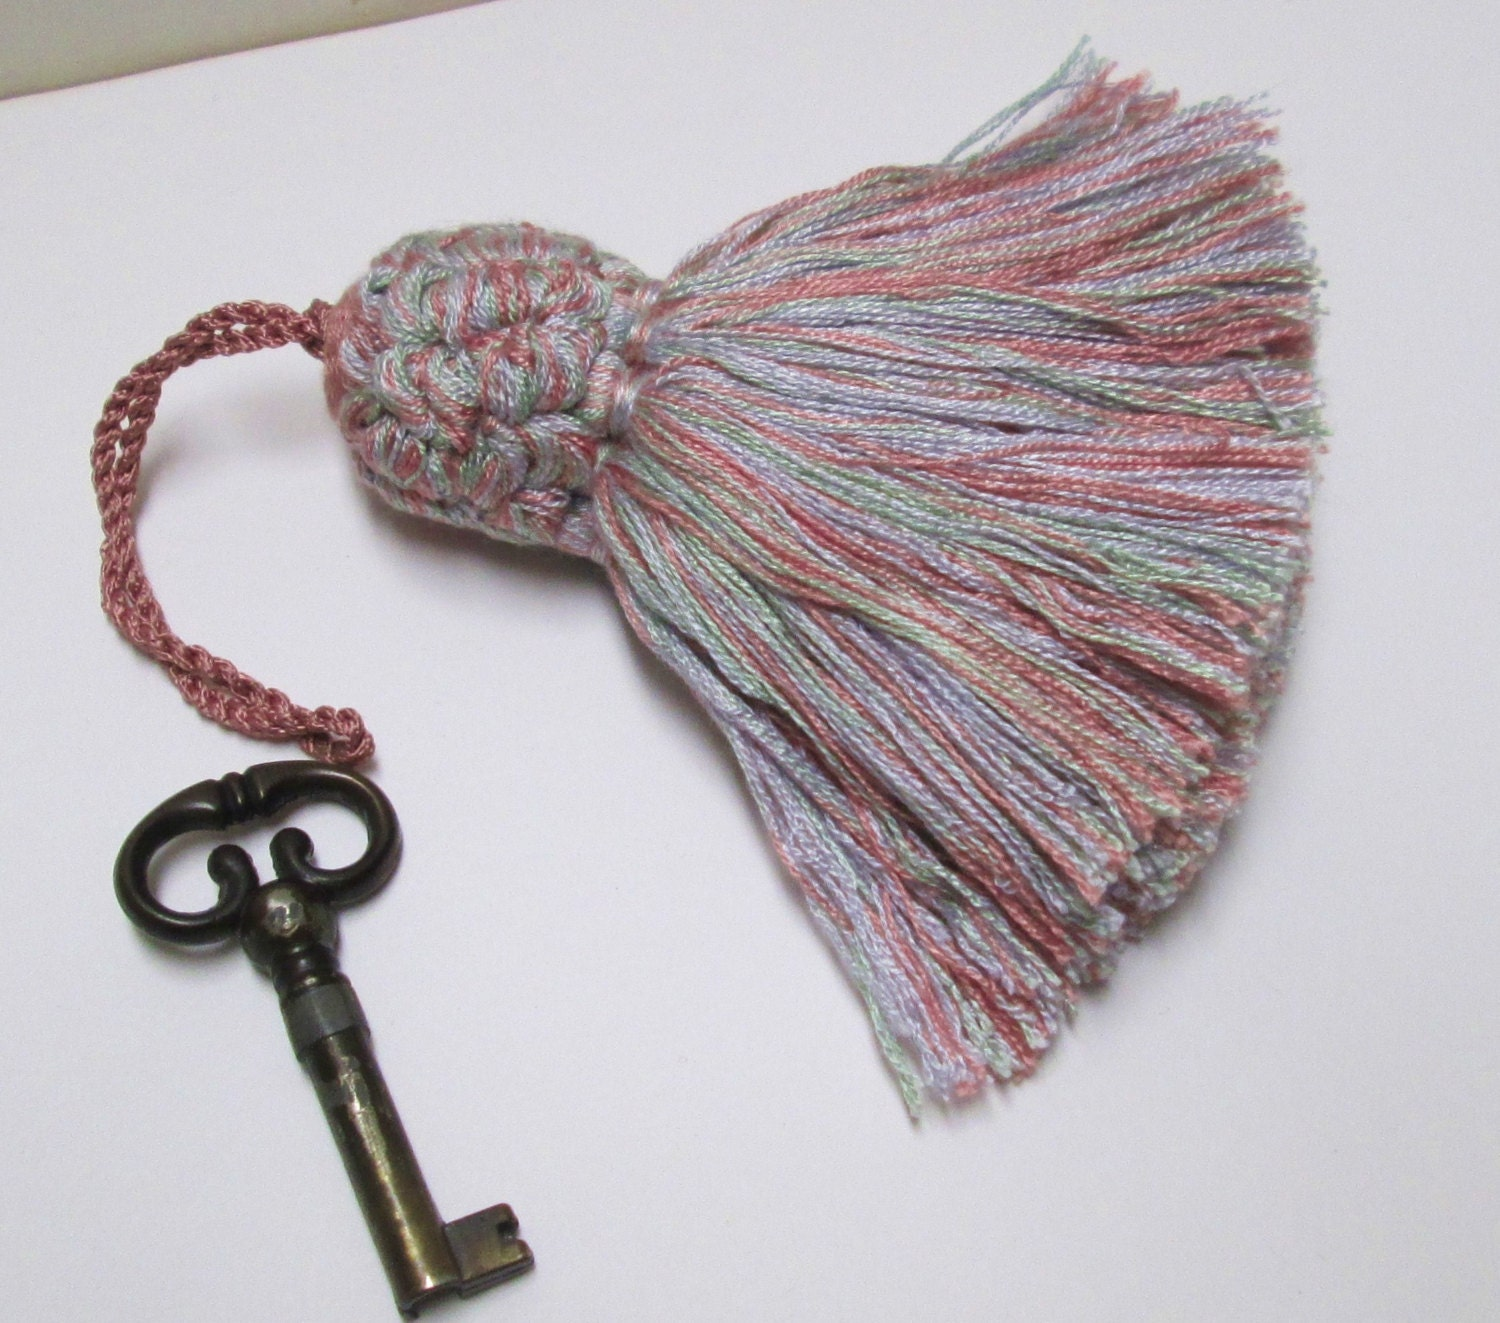 Large Tassels Home Decor: Jumbo TASSEL Furniture Key Fob Tassel Large Bohemian Home